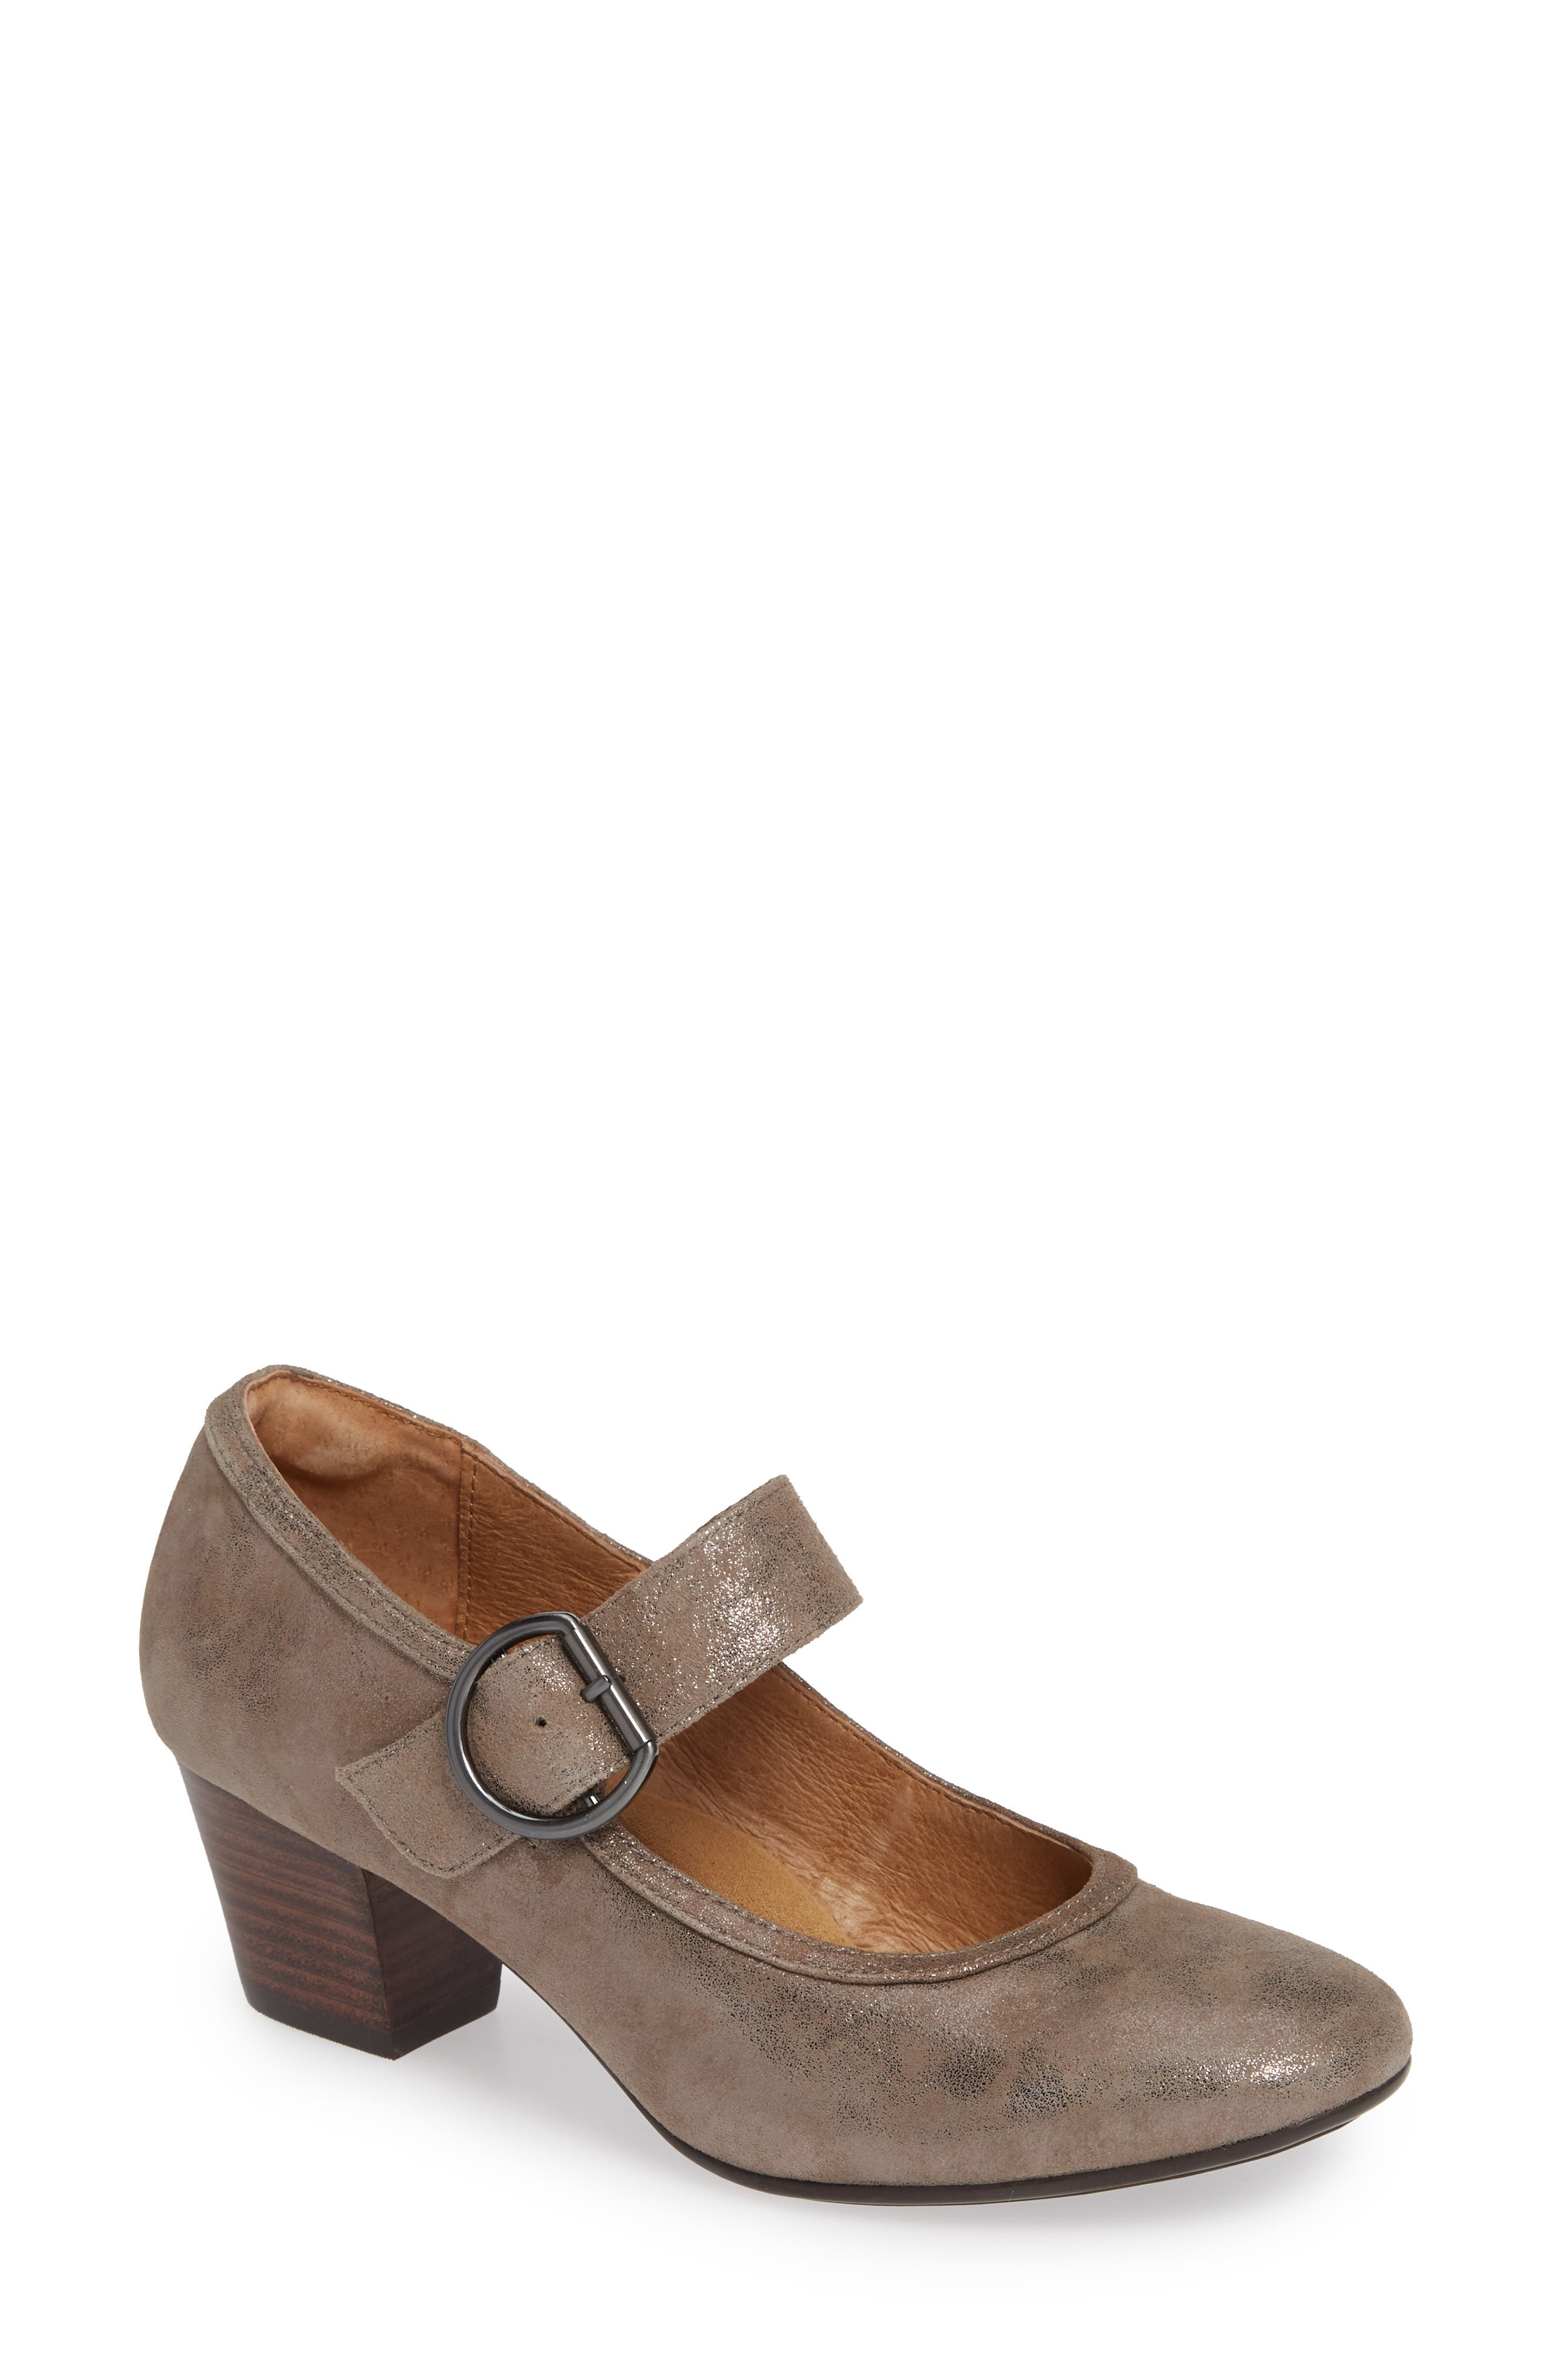 Lorna Pump,                             Main thumbnail 1, color,                             SMOKE DISTRESSED FOIL SUEDE